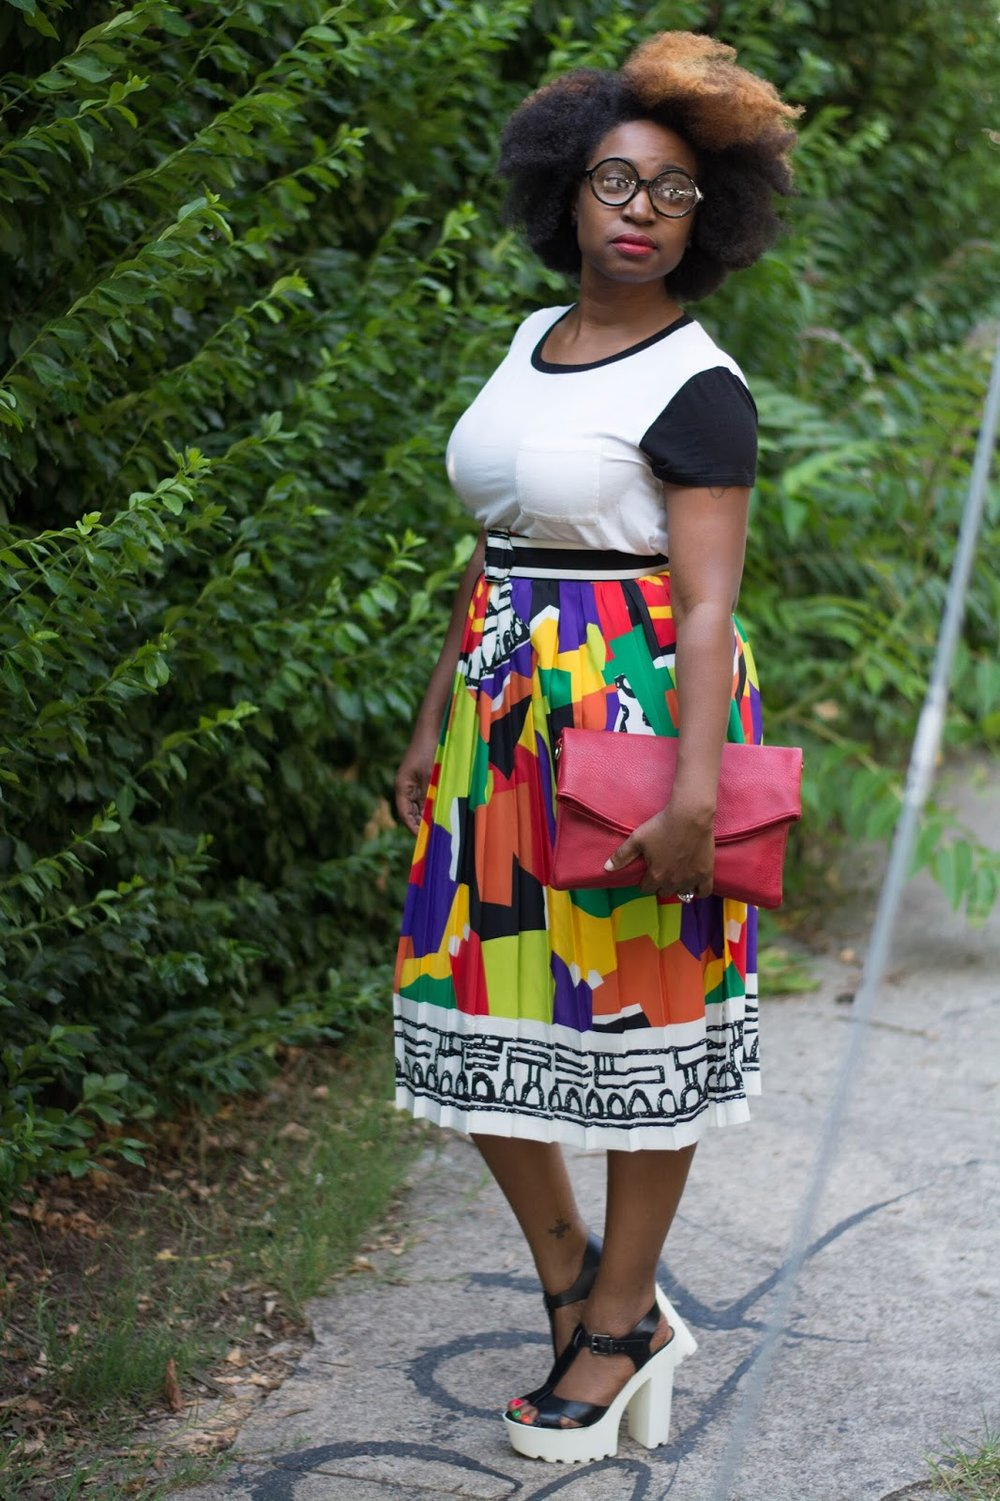 The Style Klazit, Melodie Stewart, Atlanta blogger, Atlanta Style, Street Style, Atlanta fashion, Style Blogger, Black Bloggers, Brown Bloggers, Style Influencer, Black girls killing it, Natural Hair, 4C Natural Hair, Black girls rock, Black girl magic, Vintage fashion, Atlanta stylist, Vintage Style, Thrifted Fashion